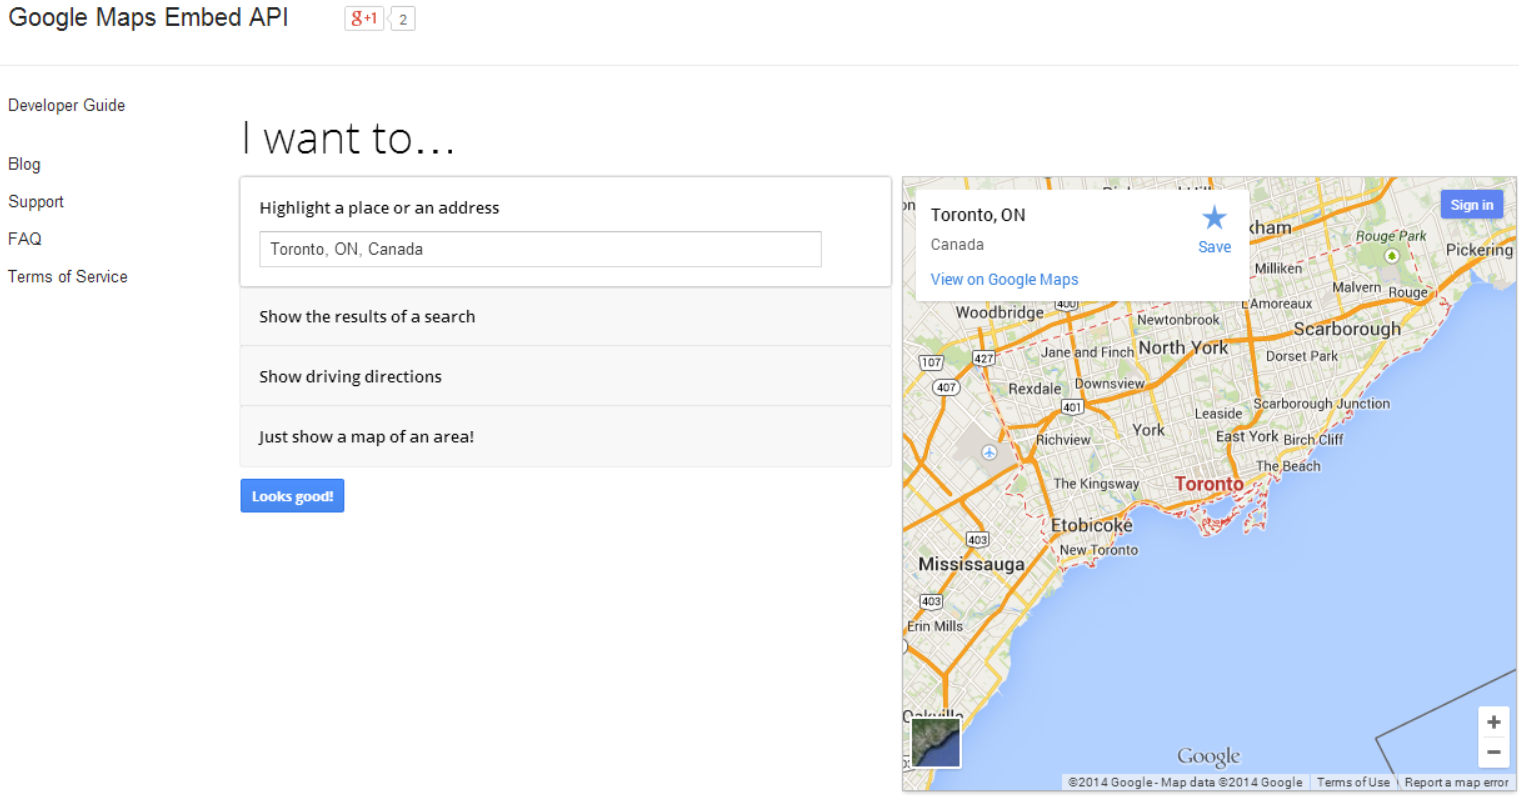 Google Maps Embed API Lets Developers Include Maps in Websites on bing maps 2014, world maps 2014, disney maps 2014, google map pin icon, google map of british columbia, aerial maps 2014, google map of spokane wa, google earth trinidad and tobago, starbucks maps 2014, google map of jordan, google street, google aerial view my house, google earth map, google landers map, google earth latitude and longitude, yandex maps 2014, google location history dashboard,